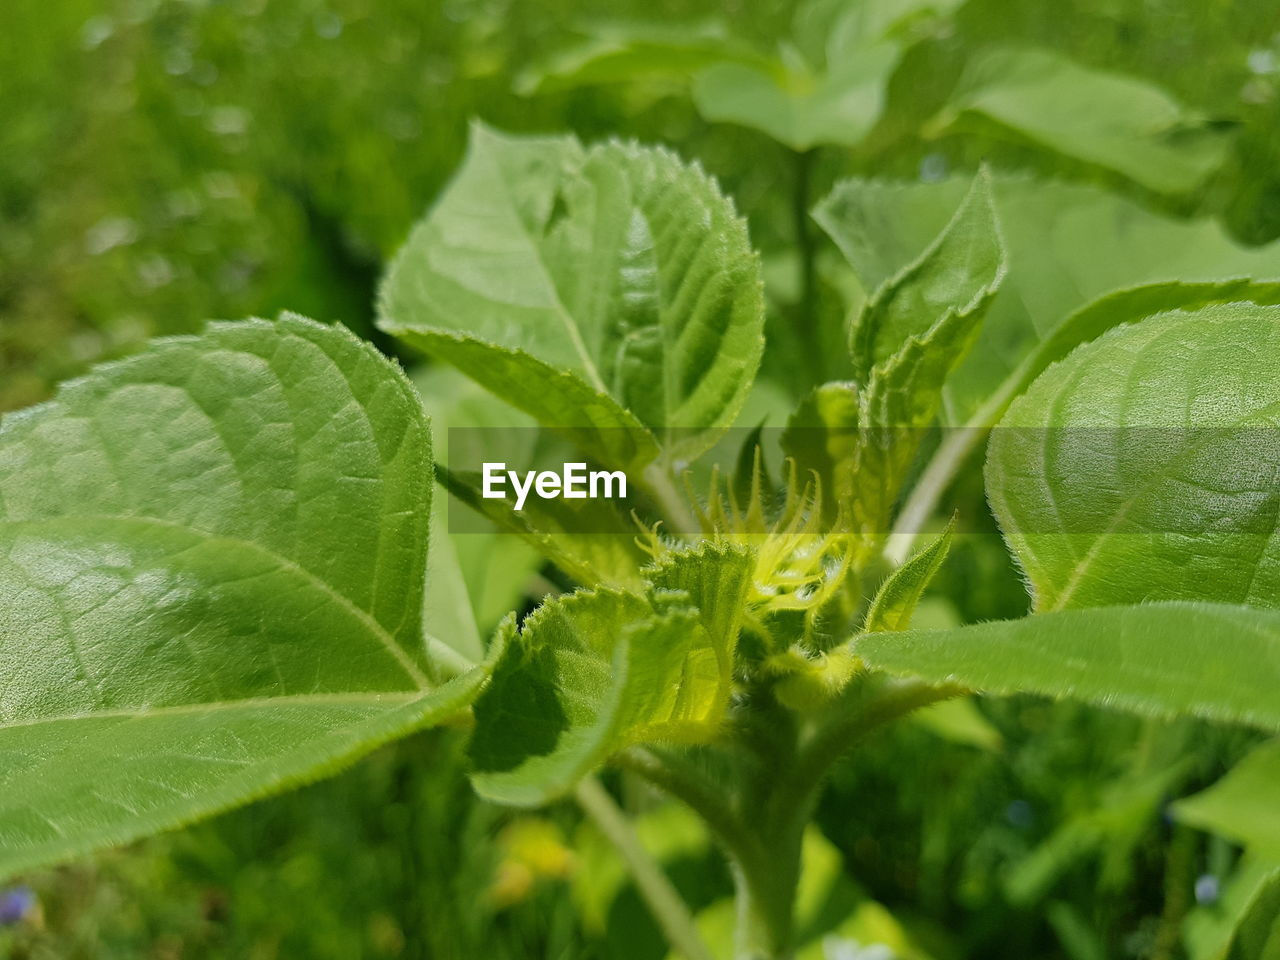 green color, leaf, plant part, plant, growth, close-up, beauty in nature, freshness, nature, food, day, food and drink, no people, selective focus, outdoors, herb, leaf vein, focus on foreground, high angle view, wellbeing, leaves